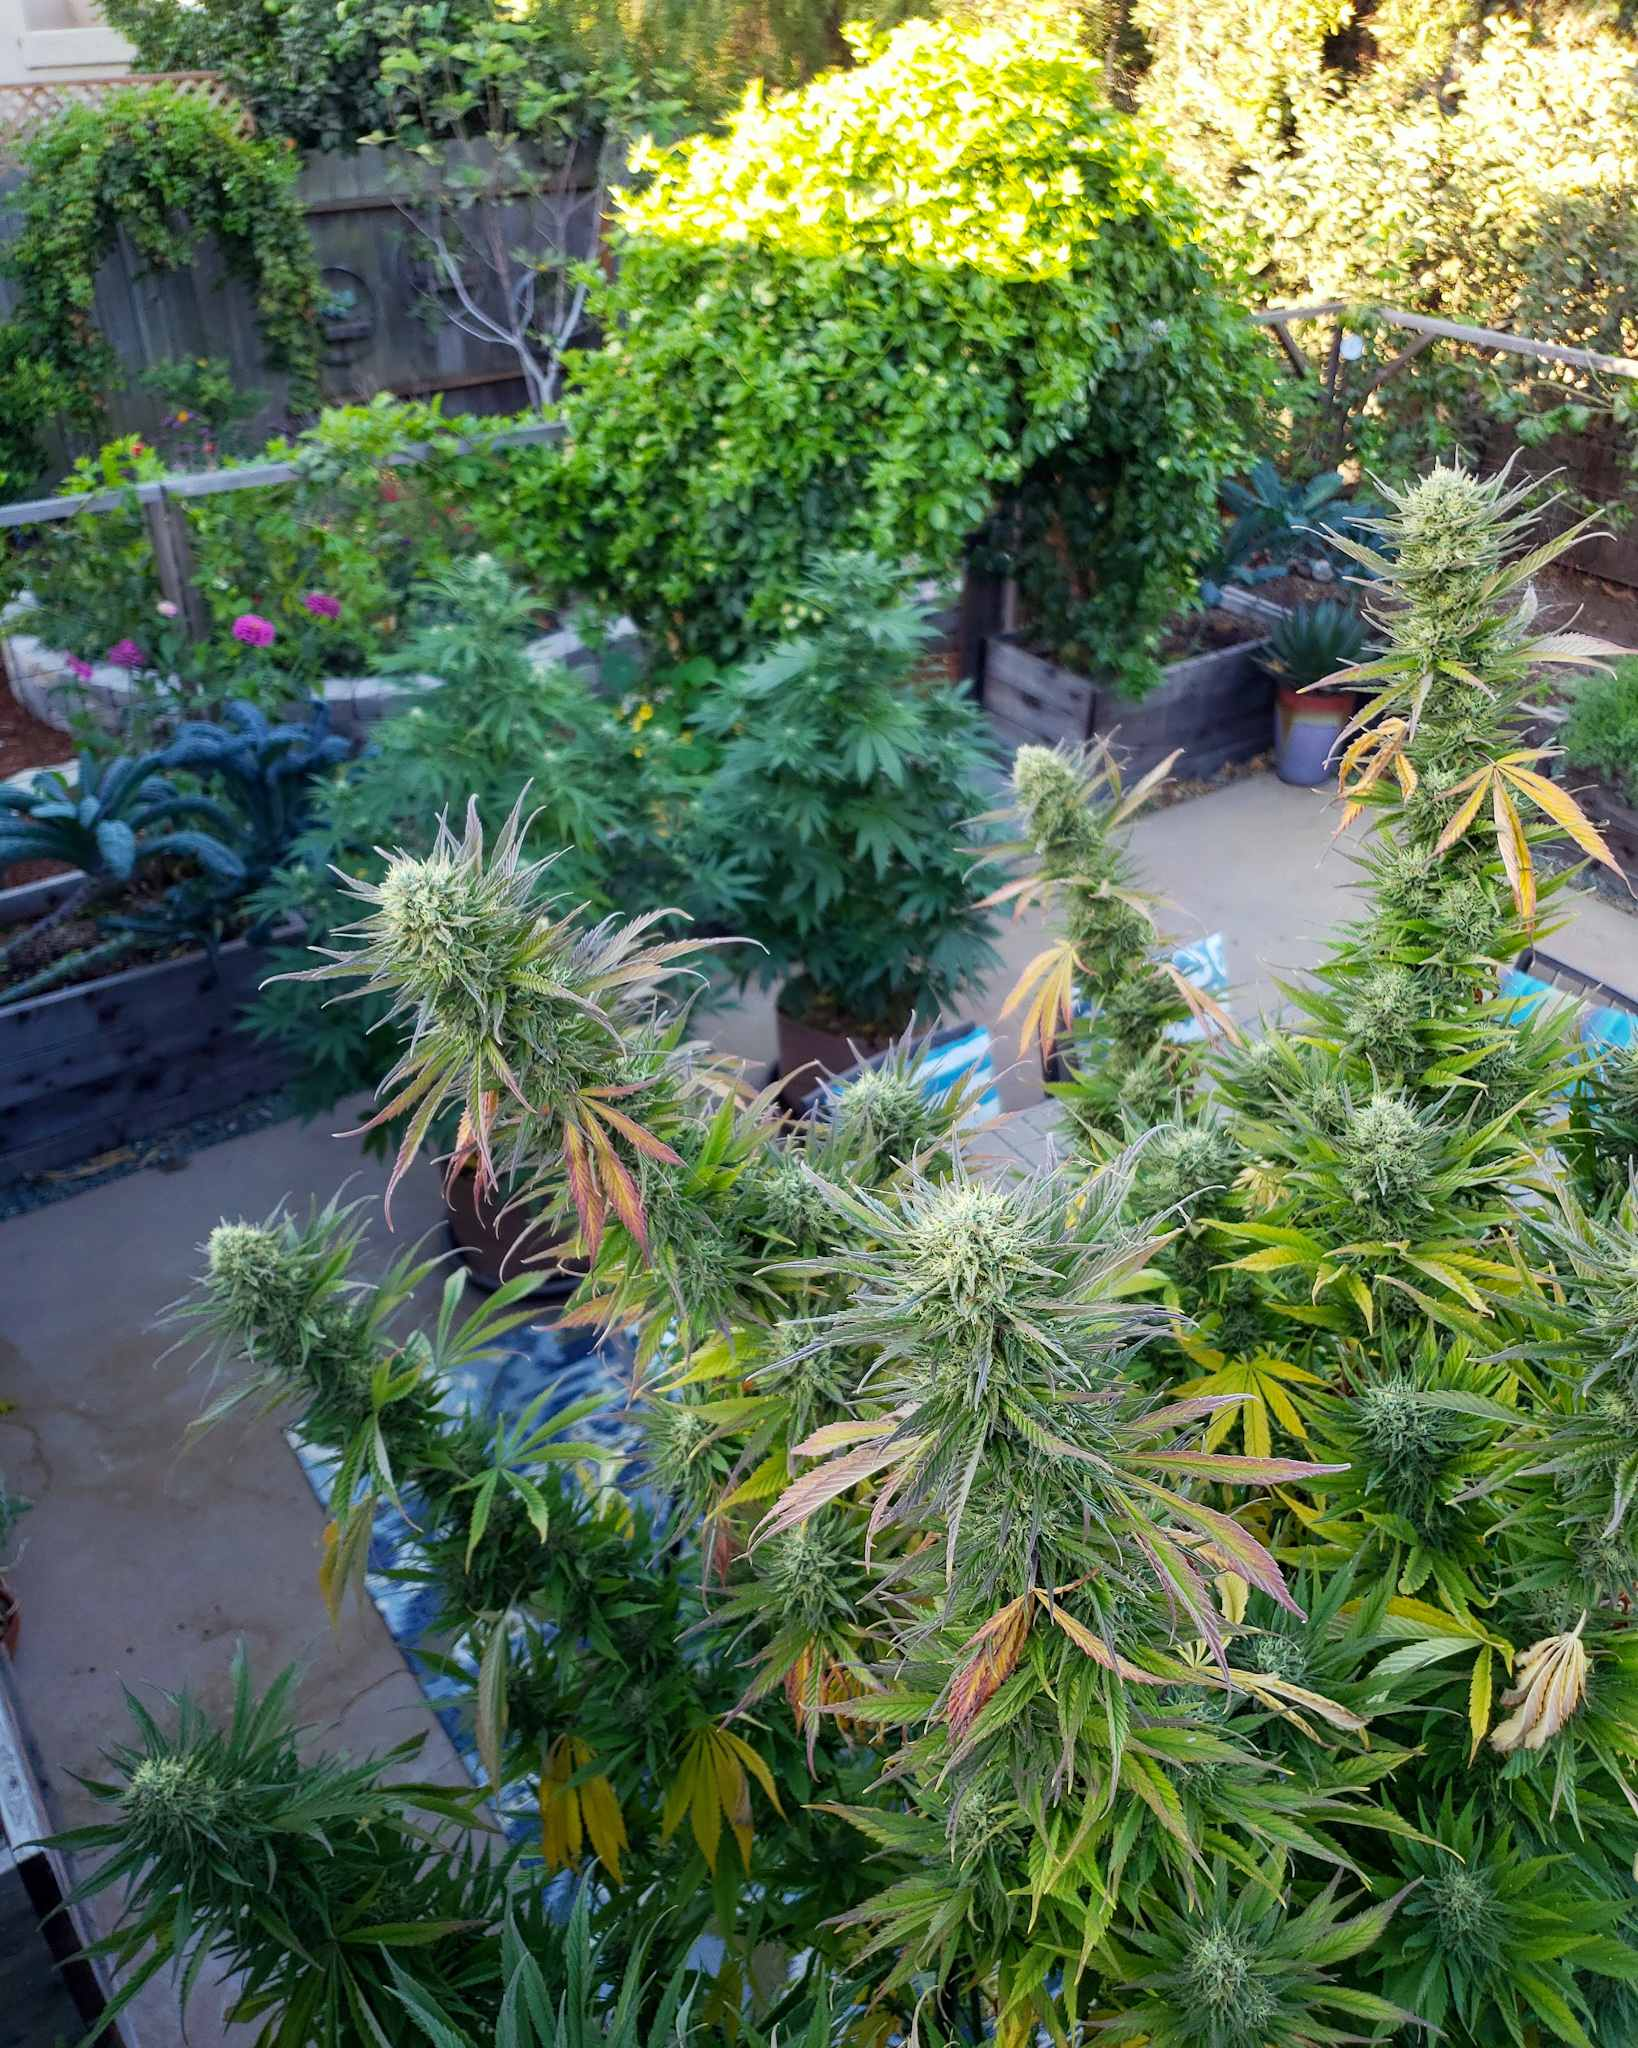 An image taken from the rooftop of a house towards a backyard patio, there is a tall cannabis pant stretching all the way to the center of the image, the plant has yellowing leaves and swollen  buds. There are two younger and smaller cannabis plants in the background amongst raised garden beds with various types of kale growing among other plants as well.